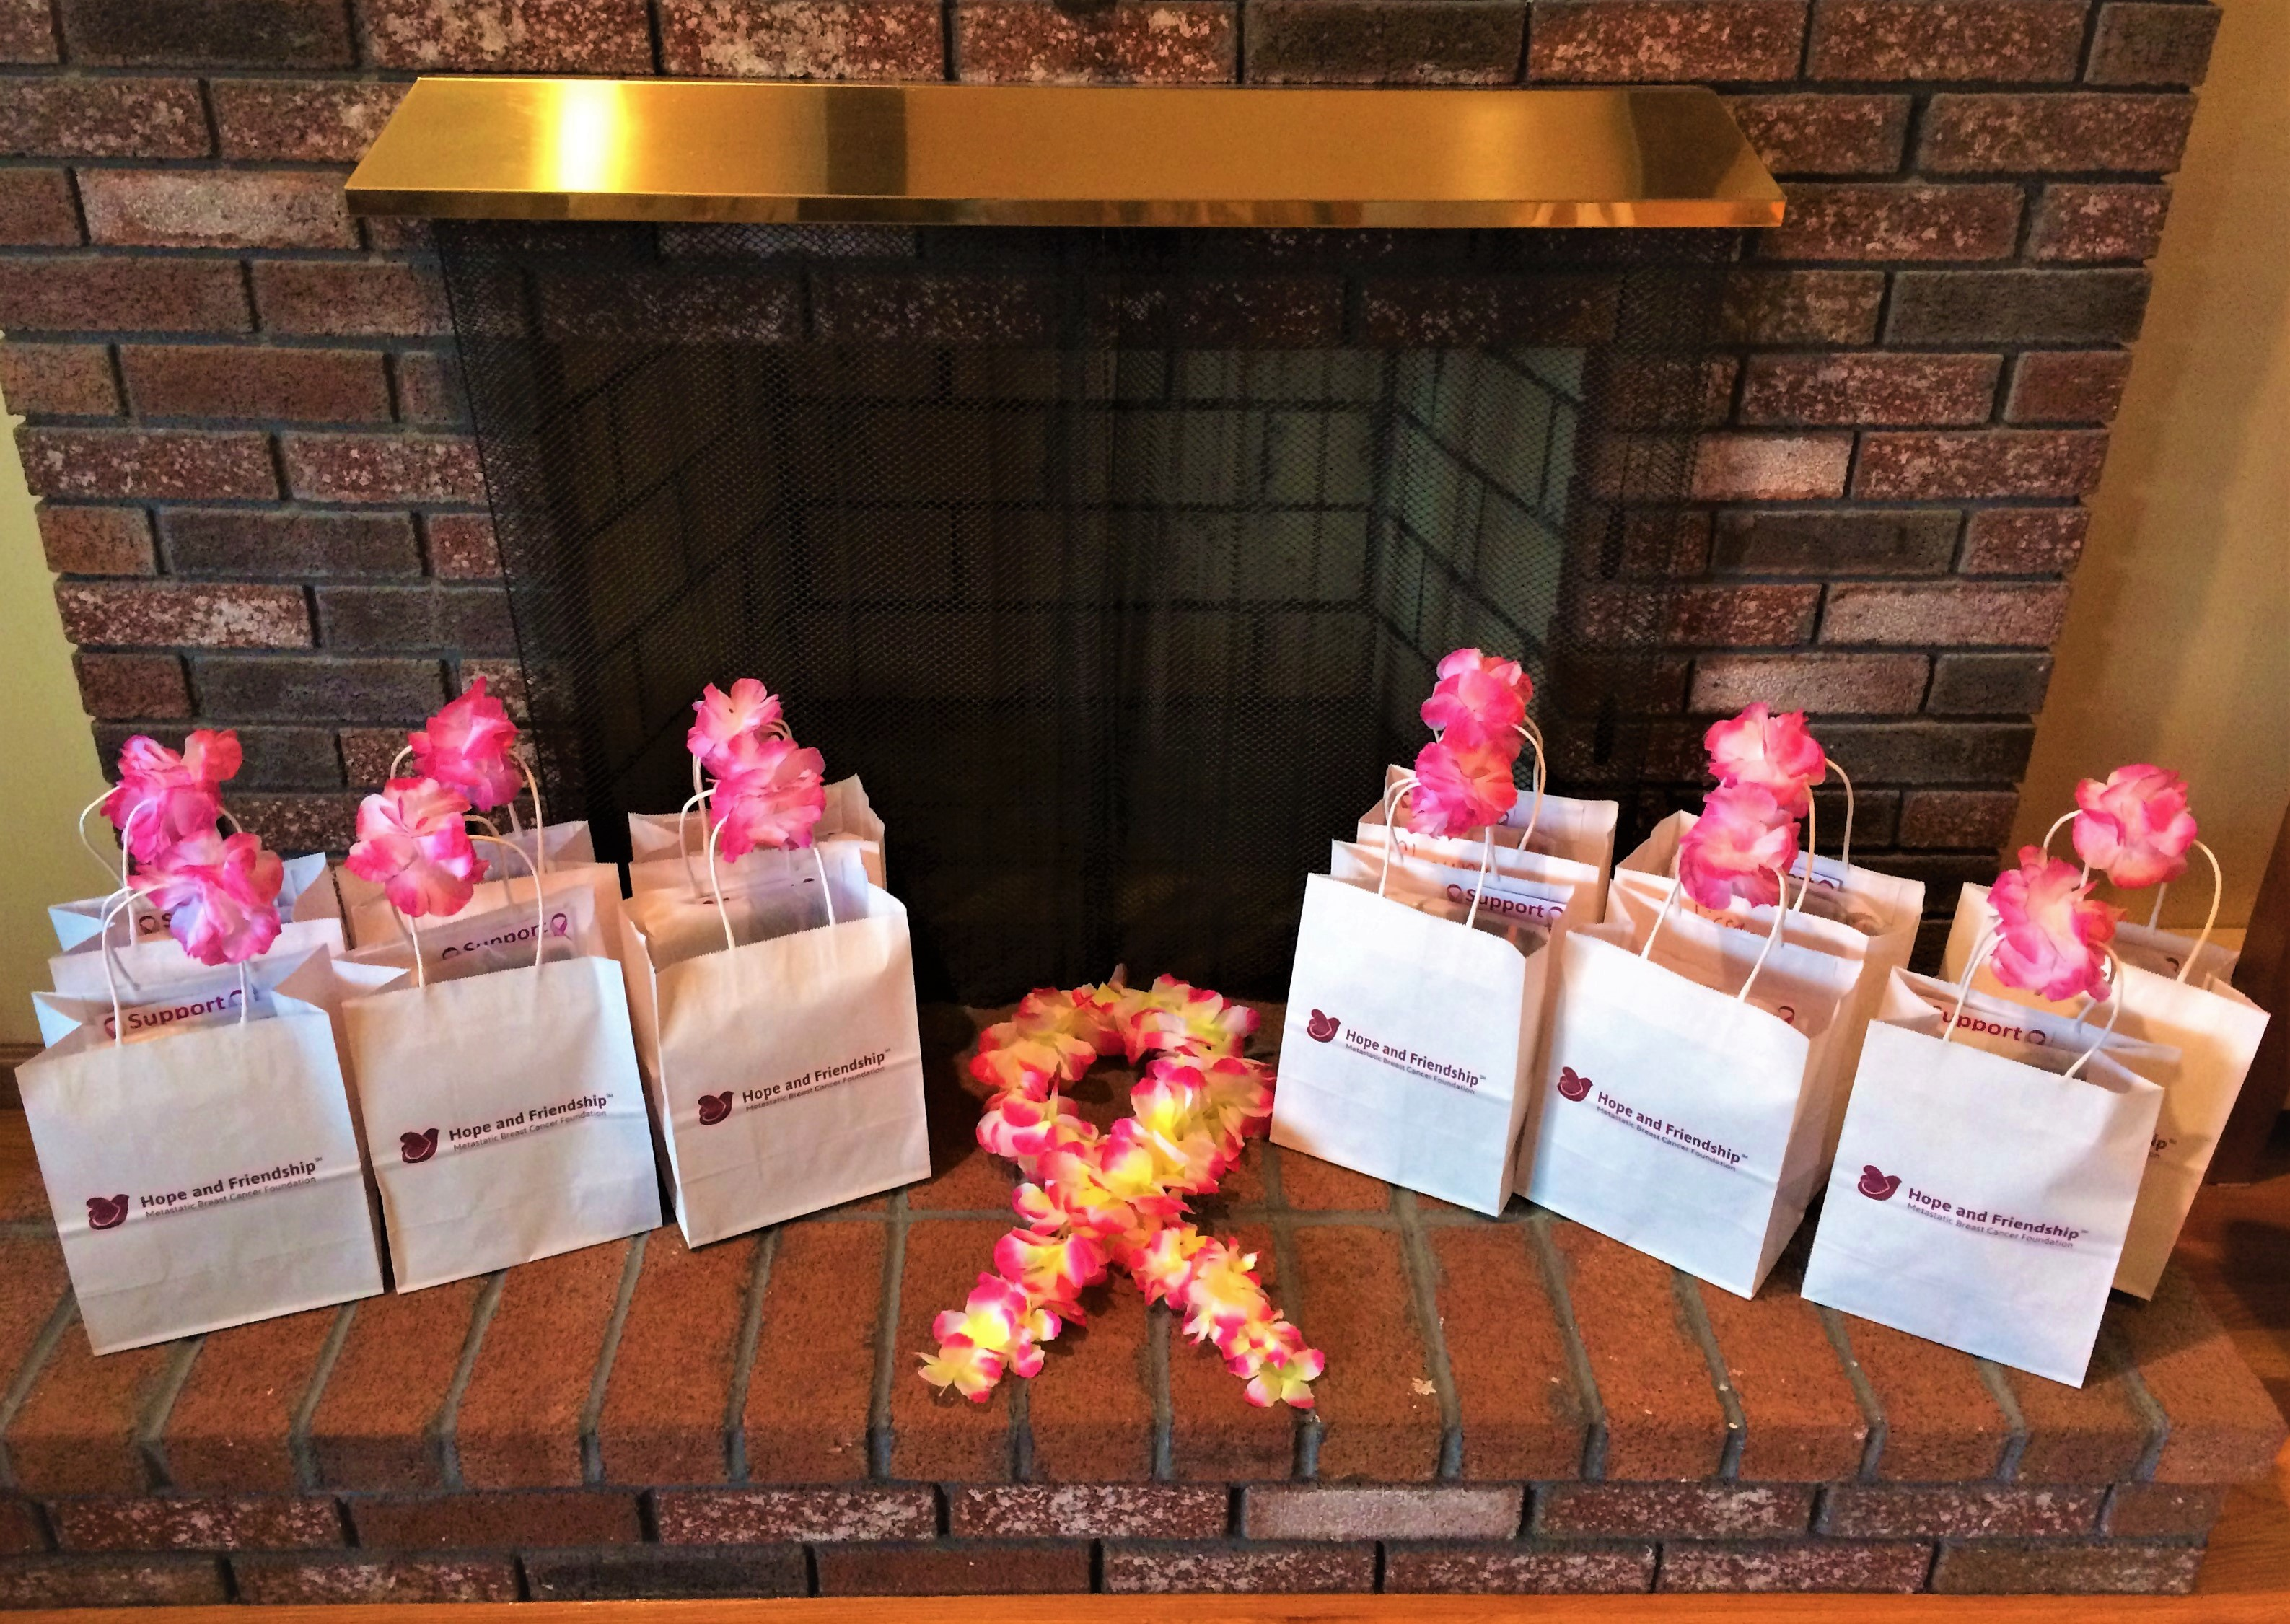 Fireplace for Silk Therapeutic Gifts